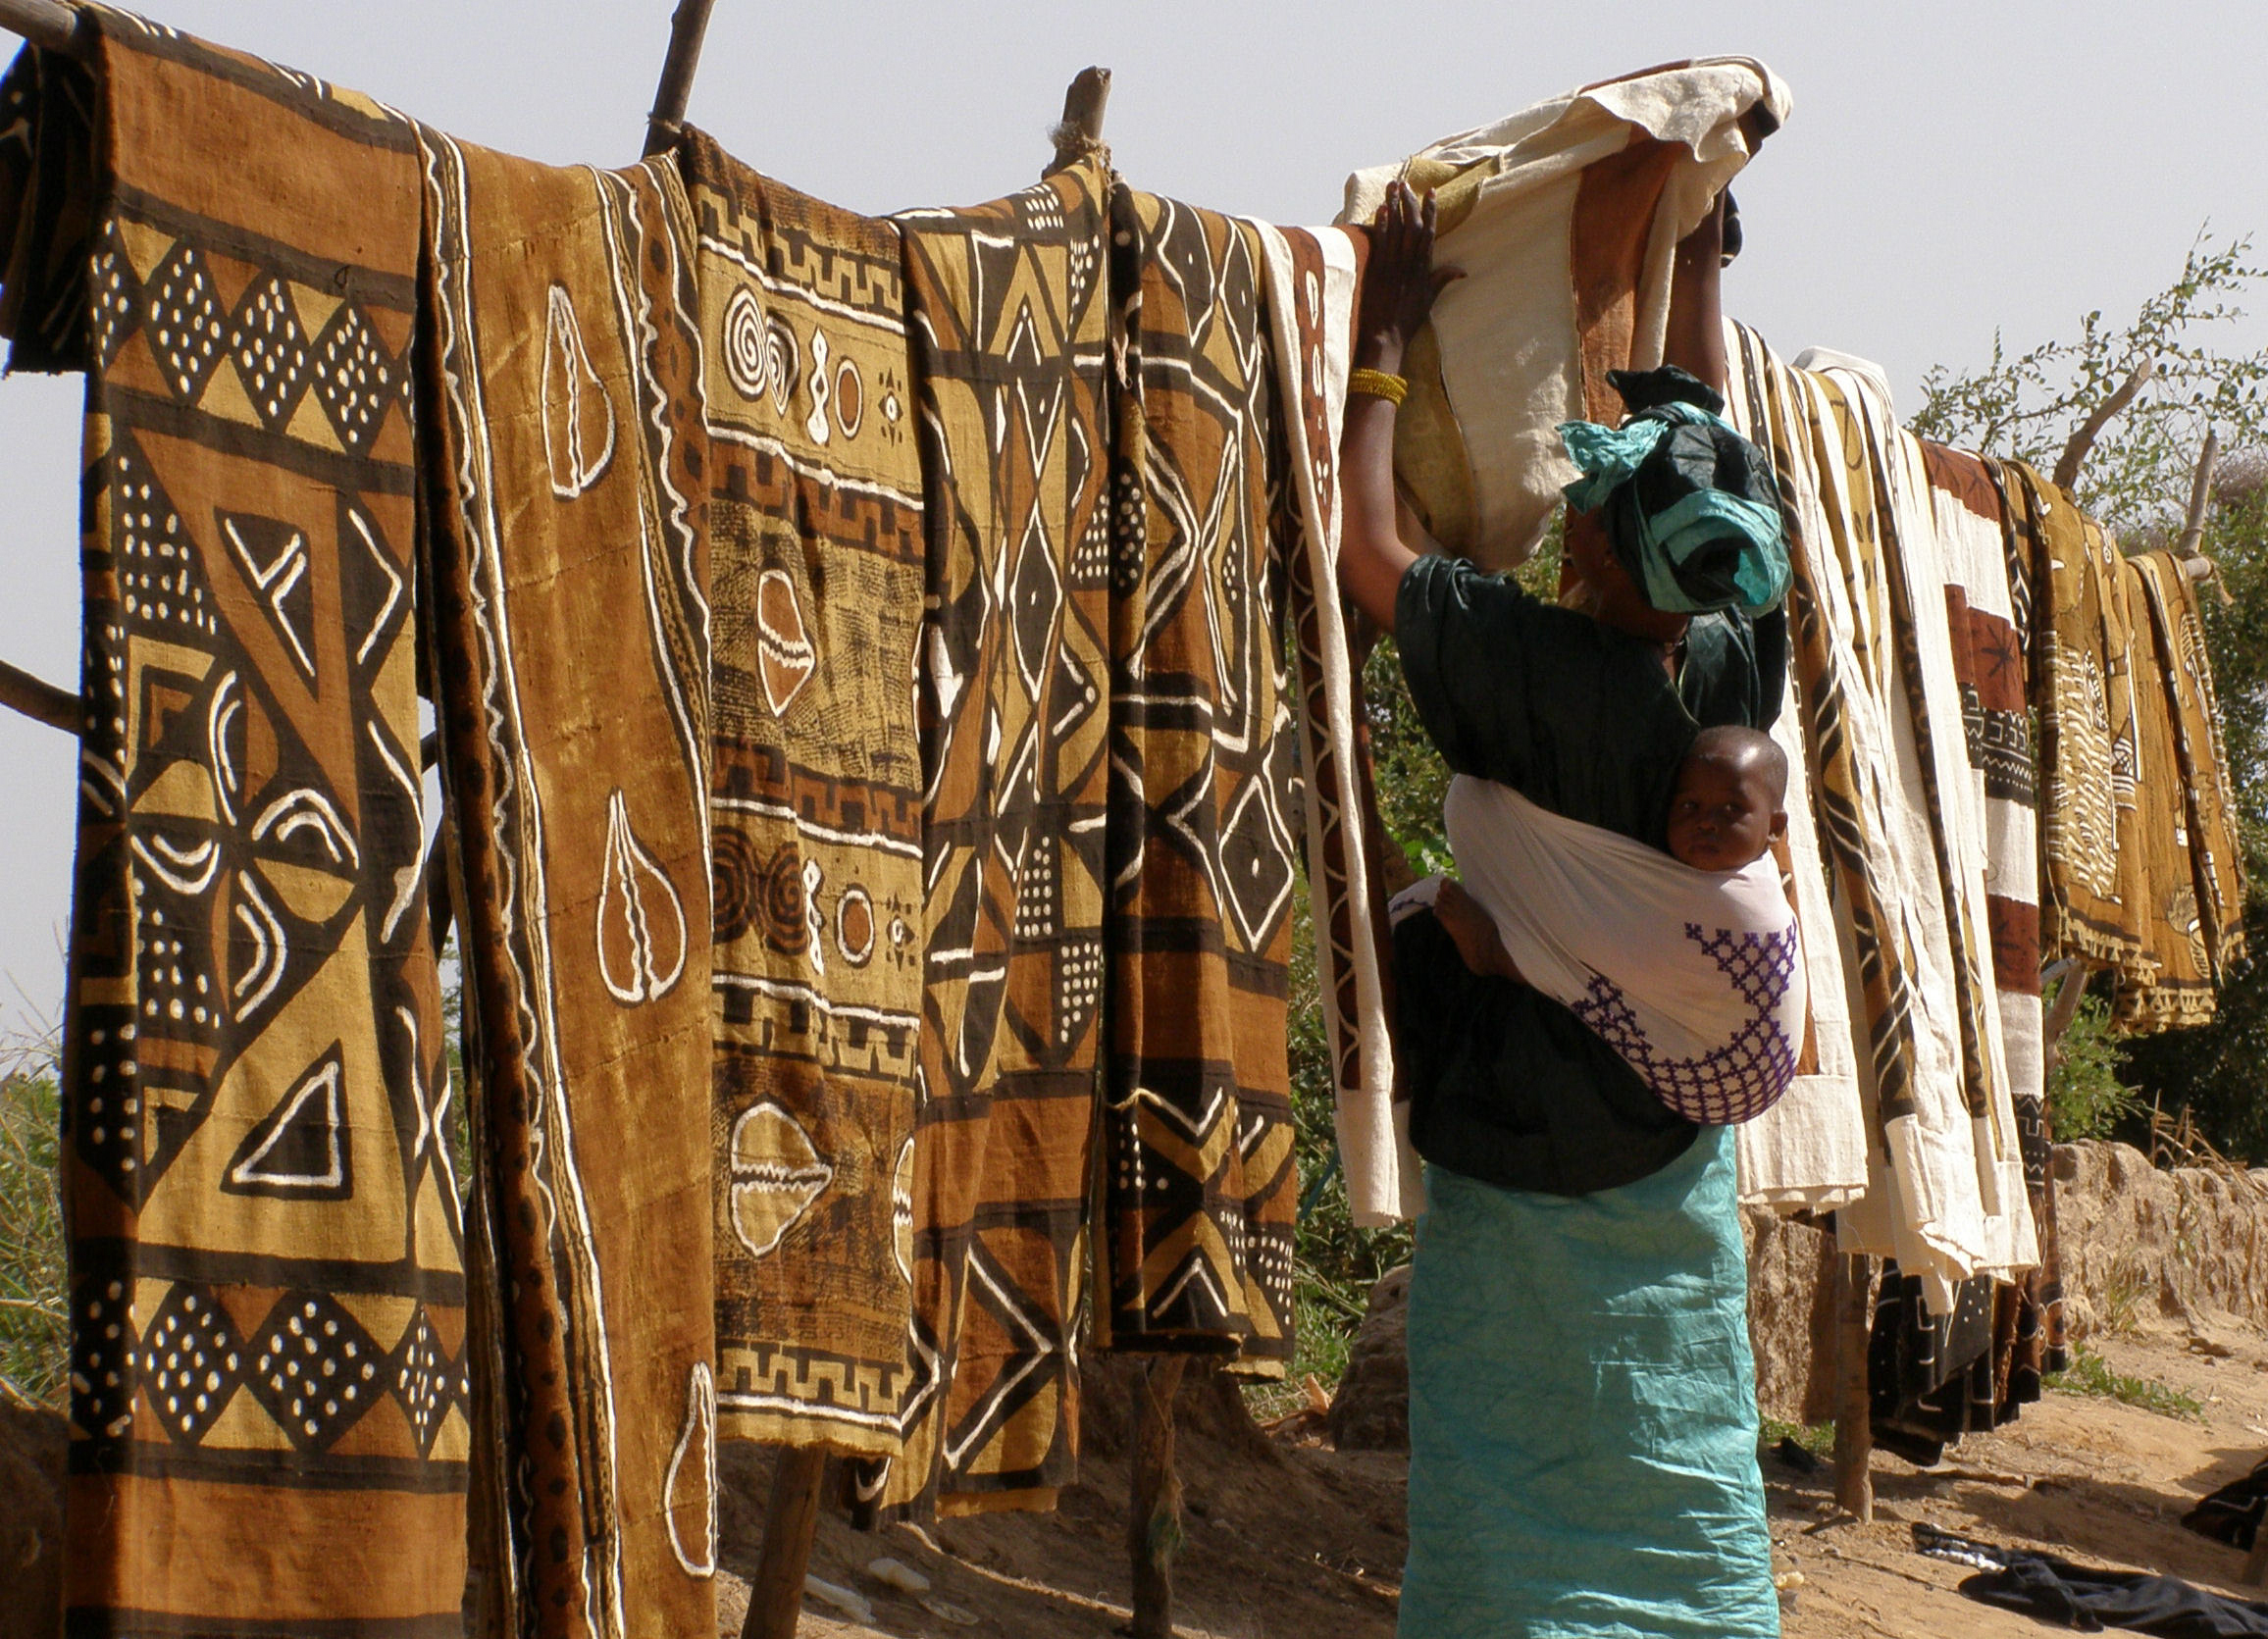 Mali civilians facing violence from armed groups: HRW